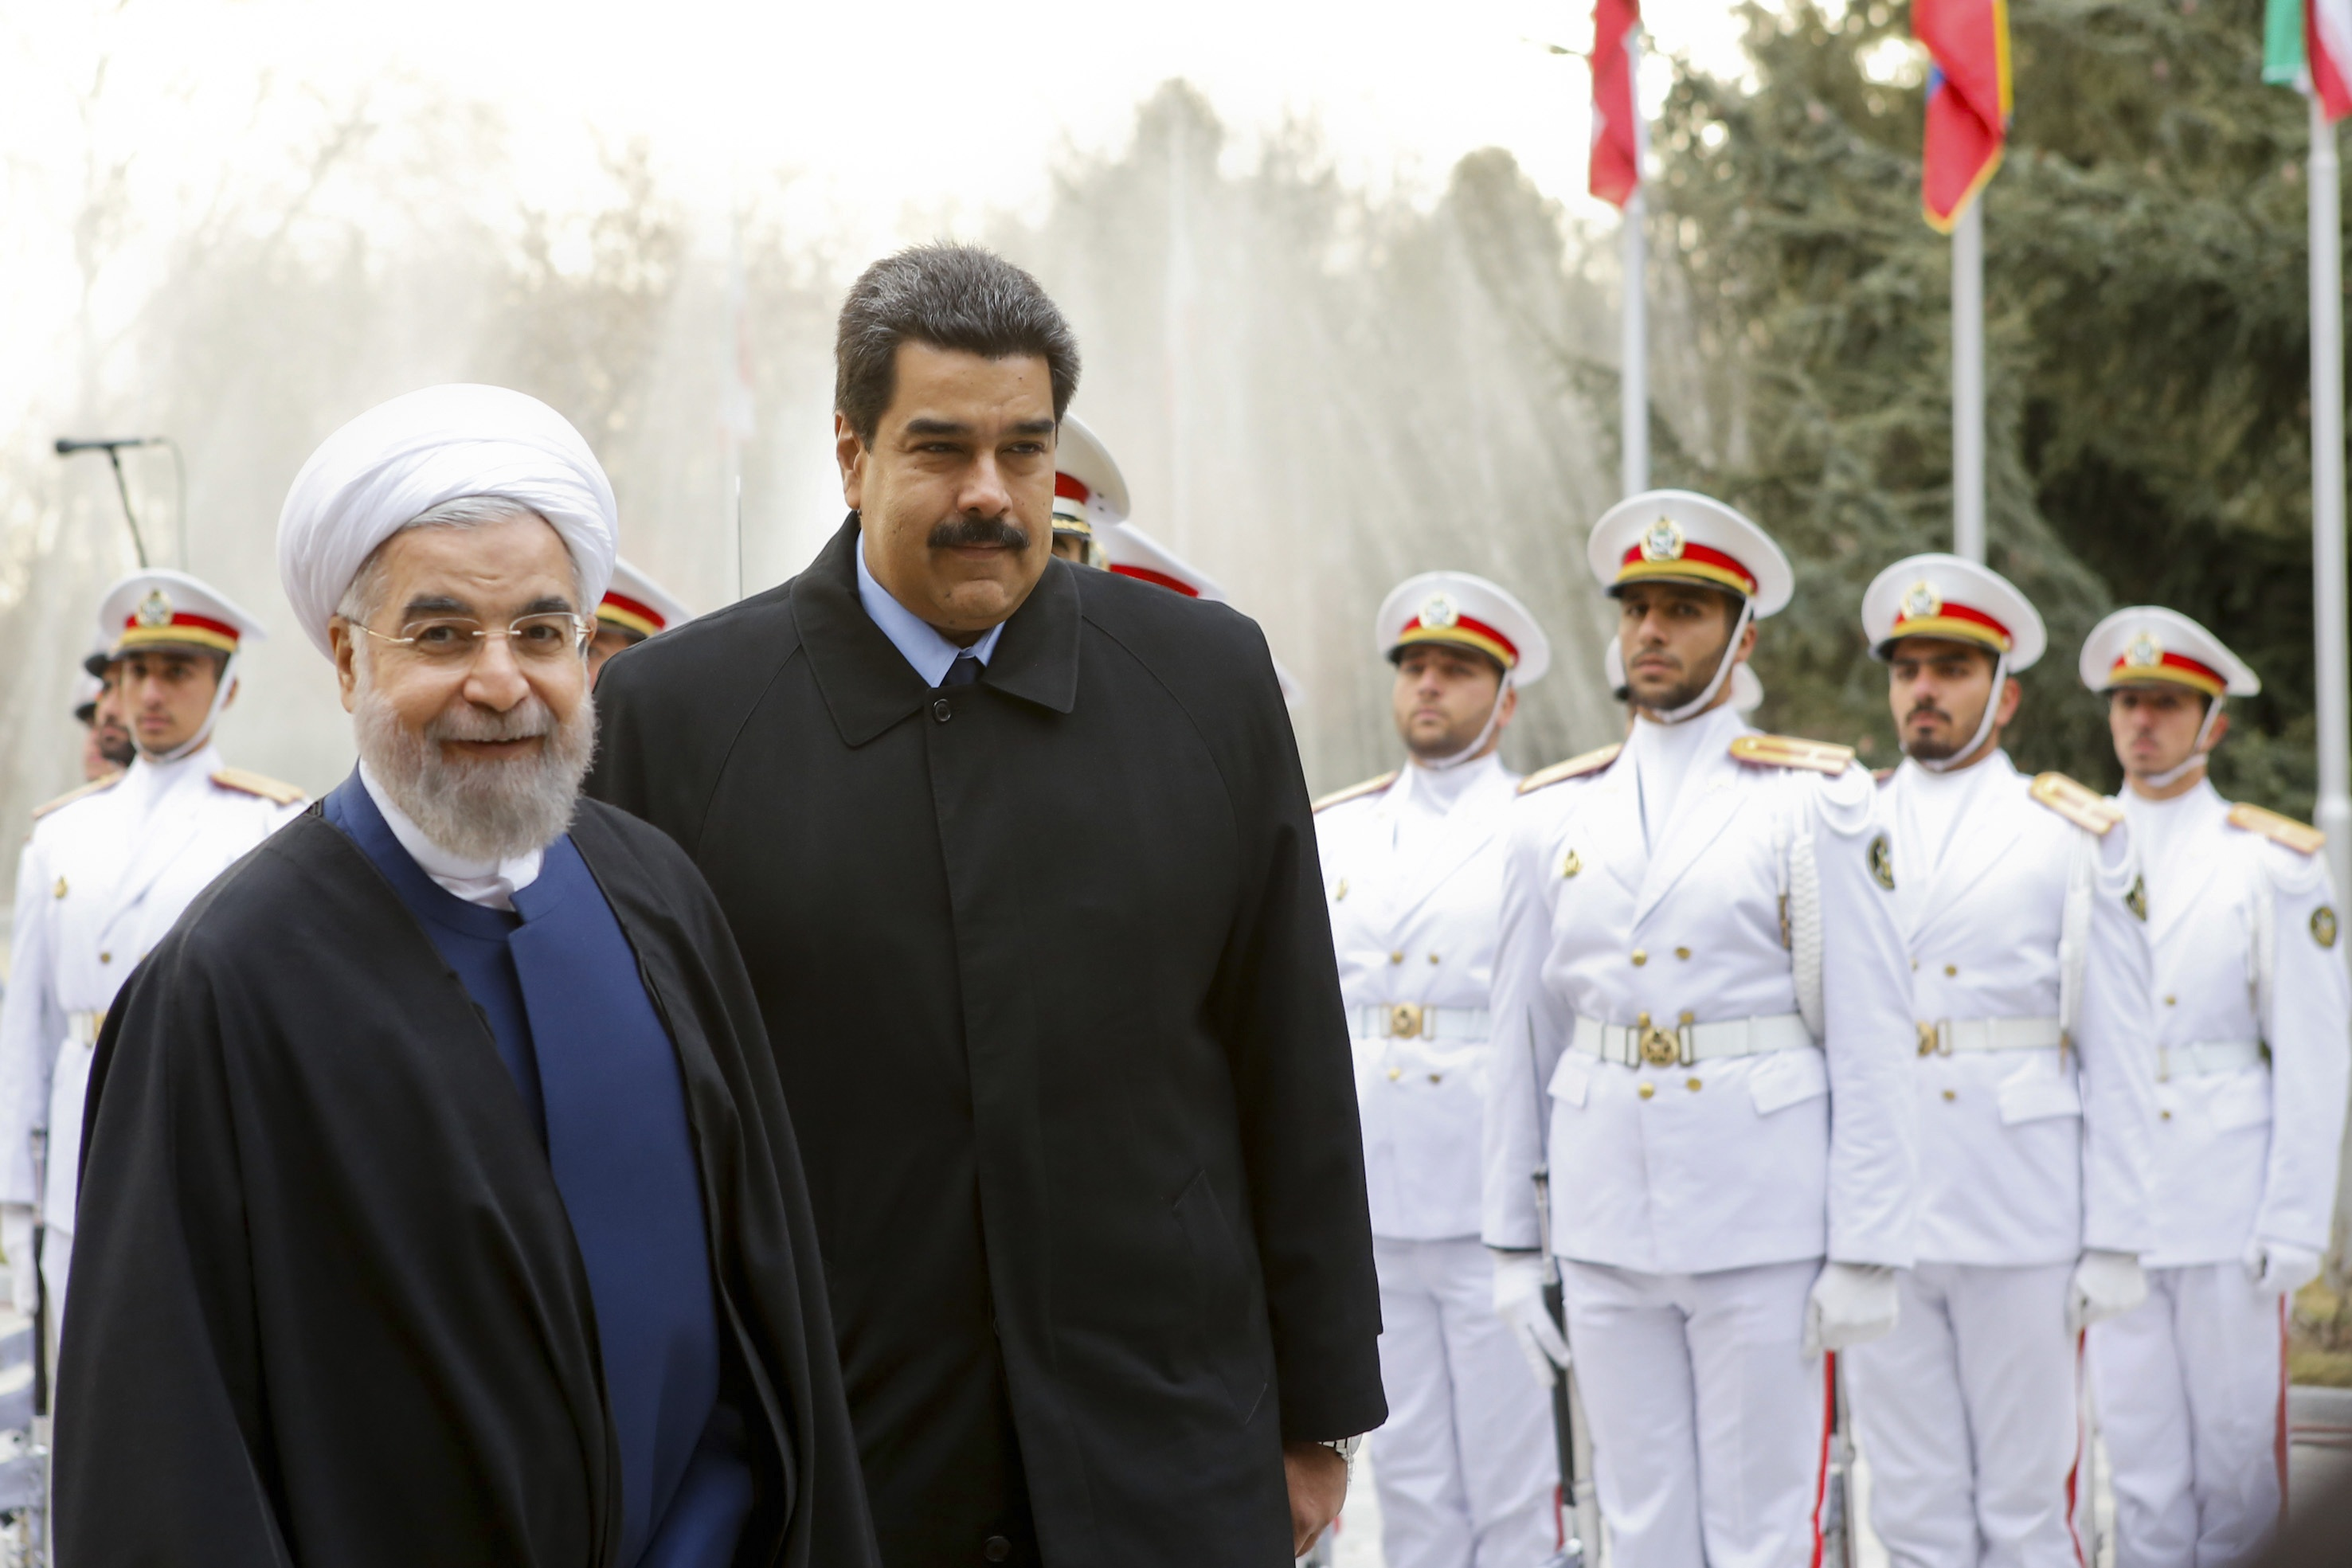 Iranian President Hassan Rouhani (left) welcomes Venezuelan President Nicolas Maduro in Tehran on Jan. 10. The reformist leader is at loggerheads with the conservative establishment, and Tehran has reportedly warned Washington that failure to win concessions could topple Rouhani.   REUTERS